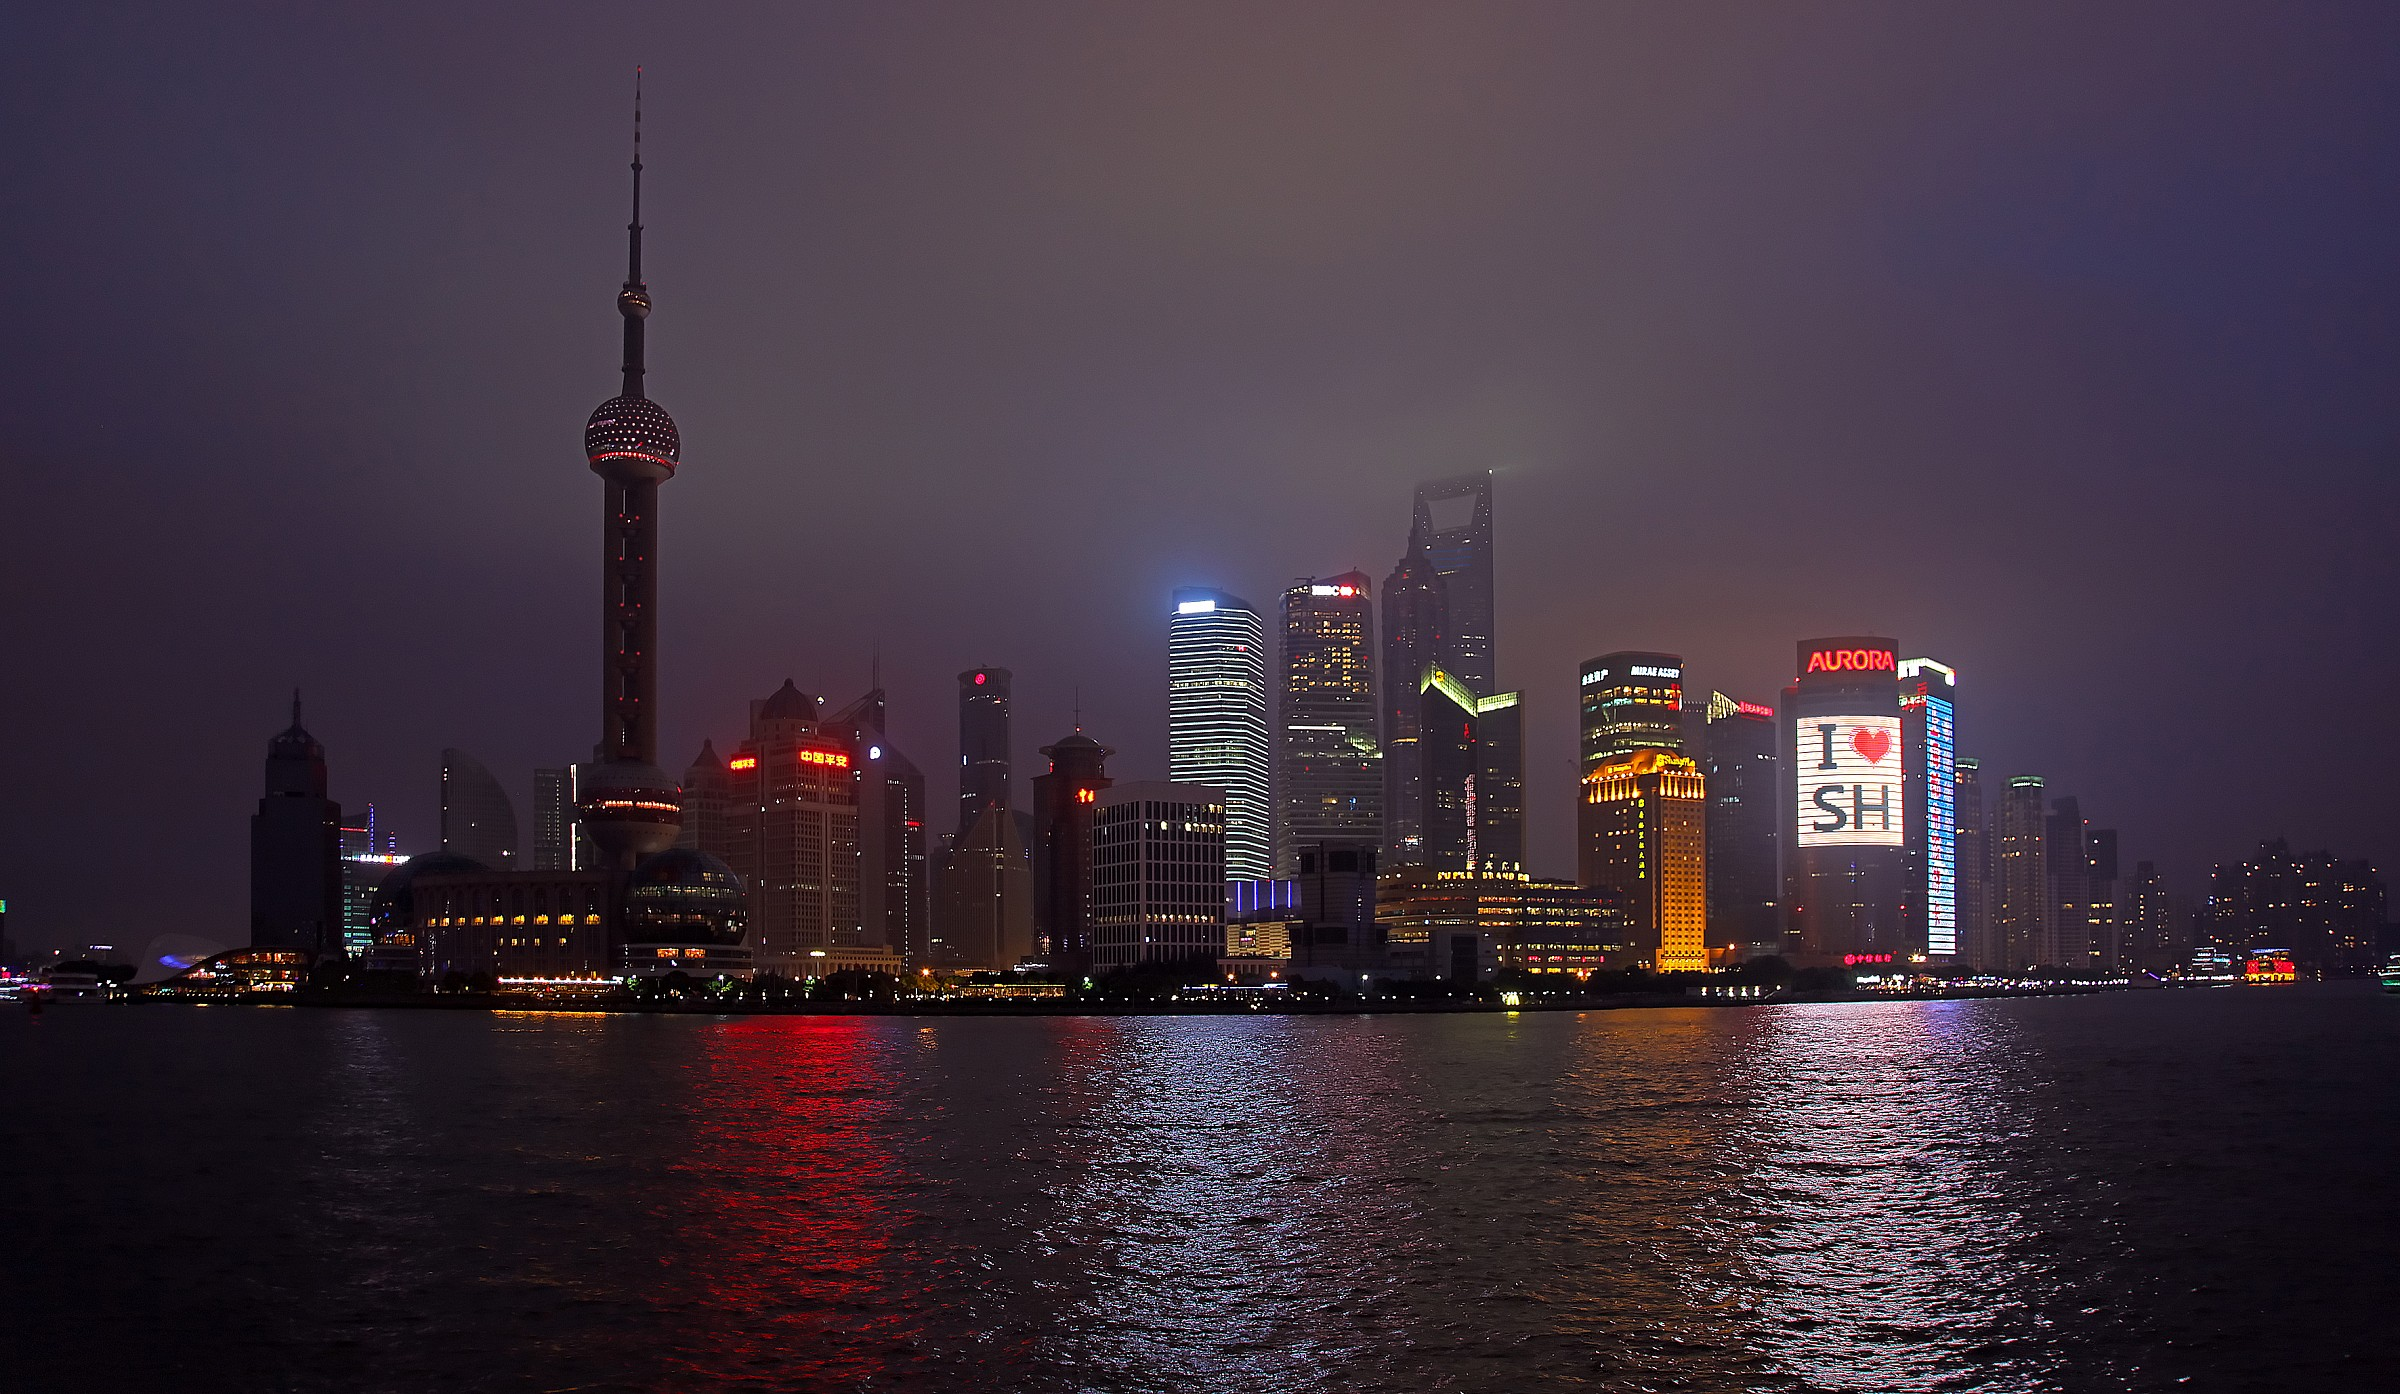 Shanghai by night...